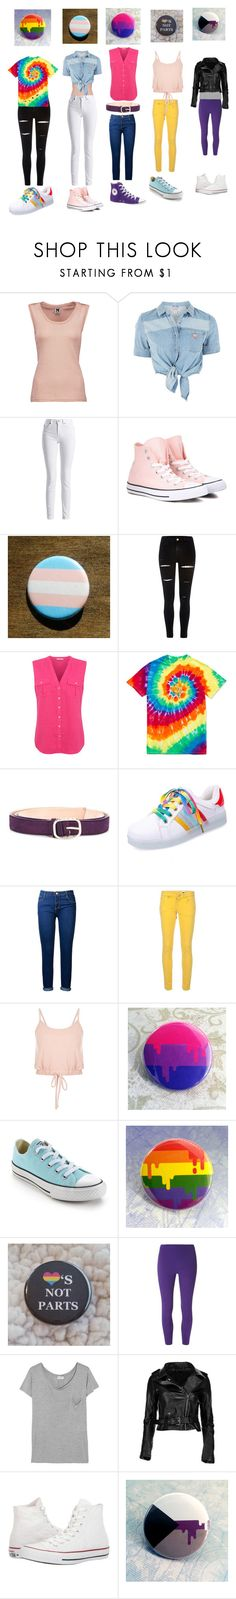 """LGBTQ+ Pride Outfiits"" by yanderewithacrush ❤ liked on Polyvore featuring M Missoni, GUESS, Barbour International, Converse, River Island, George, Nina Ricci, Dorothy Perkins and Yves Saint Laurent"